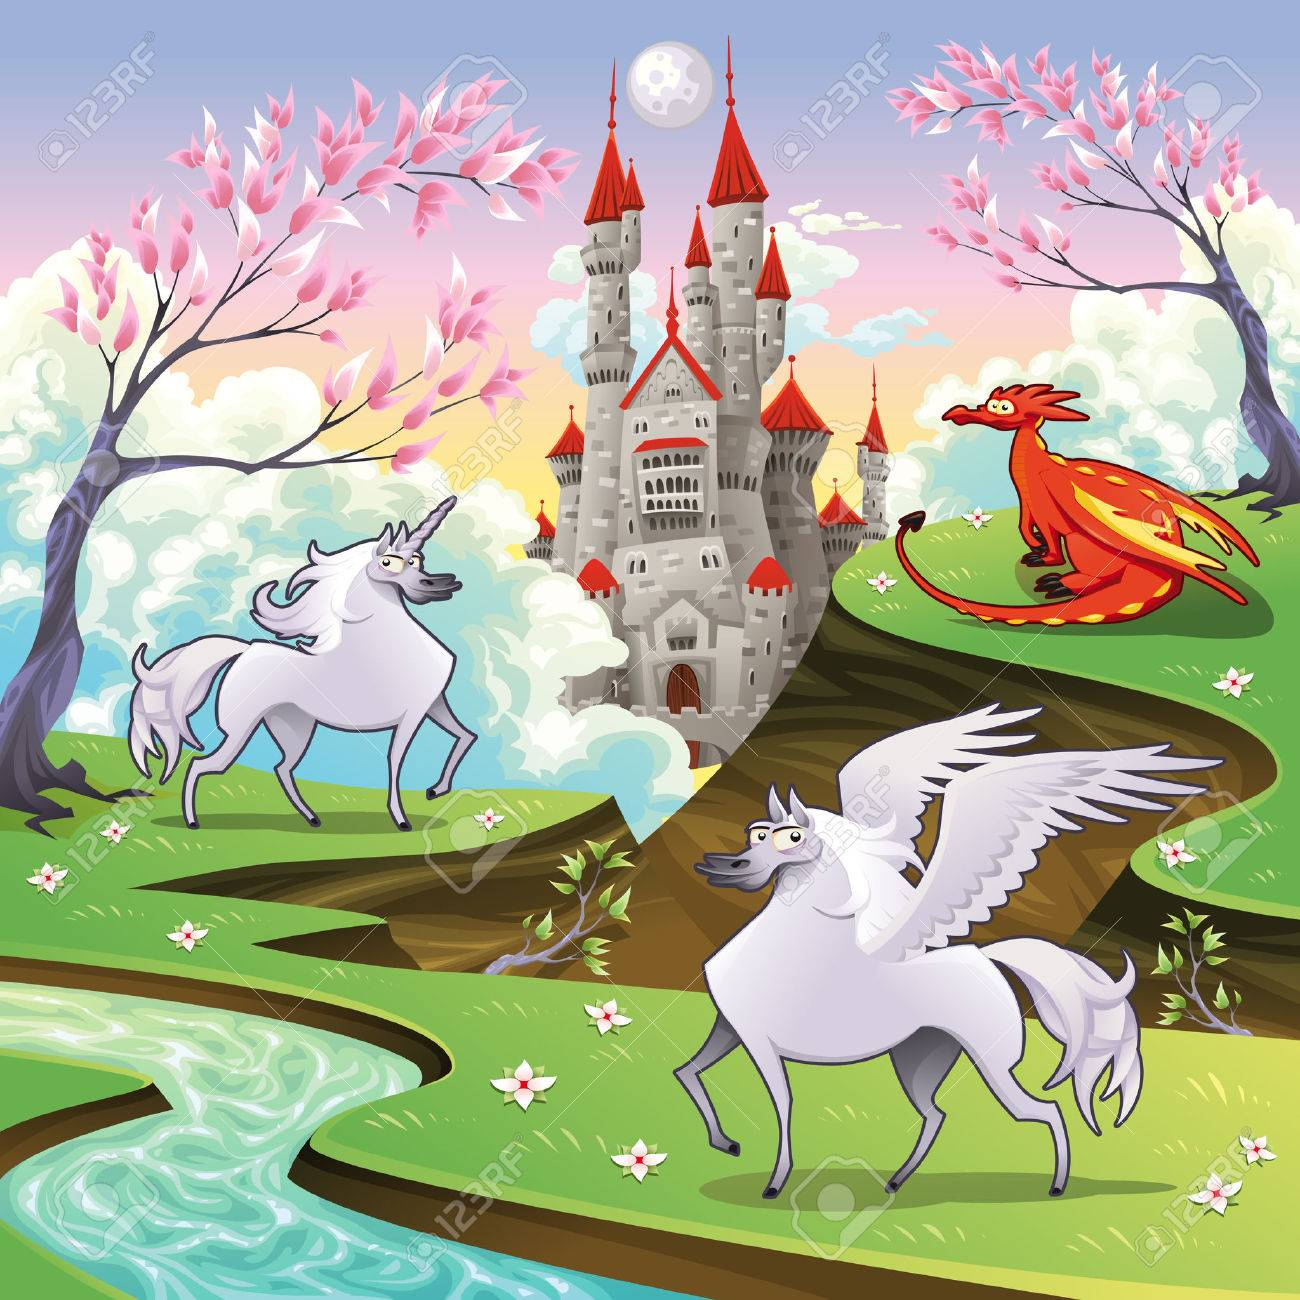 Pegasus, unicorn and dragon in a mythological landscape. Cartoon and vector illustration, objects isolated . Stock Vector - 8494640